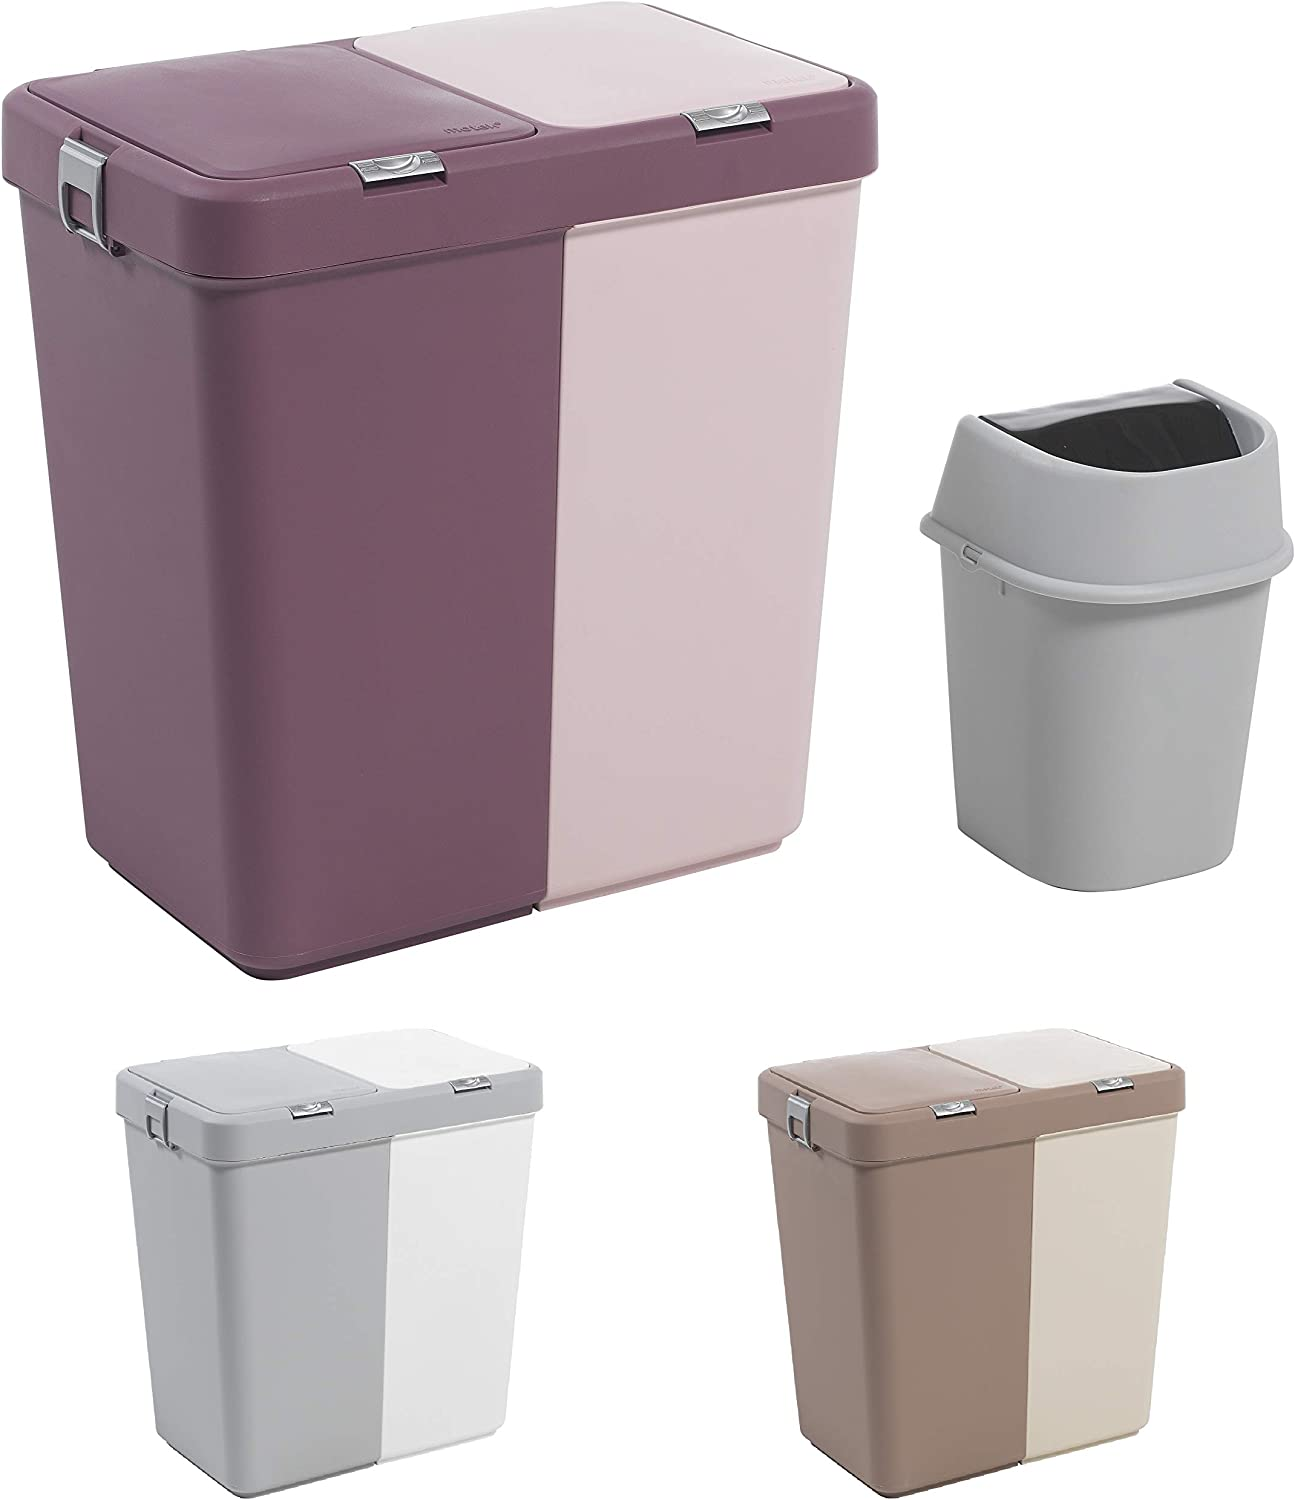 Mabel Home Plastic Laundry Hamper with Lid, 2 Sections, Large Laundry Basket – Extra Trash Bin (1,6 Gallons) inc. (Purple-Pink)